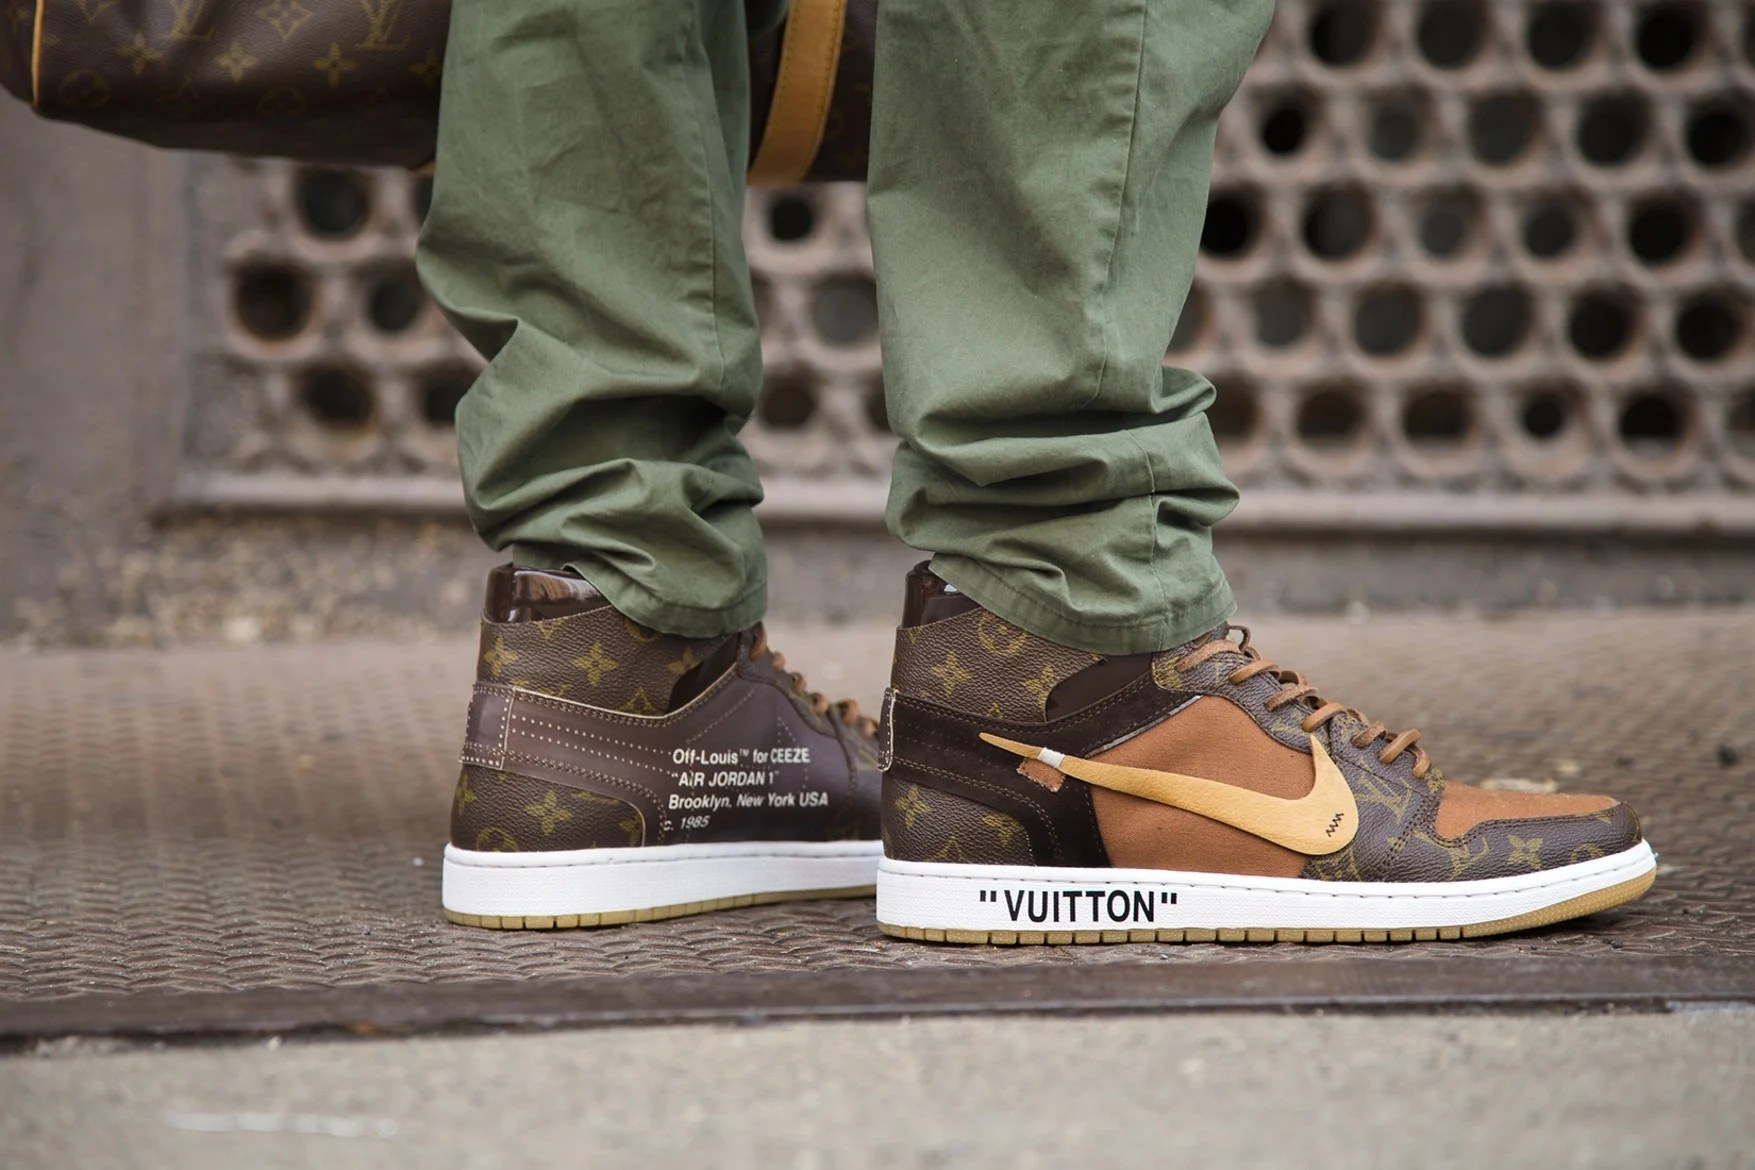 Virgil Abloh s Louis Vuitton appointment inspired this Nike Air     Nike s  Off Louis  Air Jordan 1 sneaker has Louis Vuitton s signature  monogram across its upper